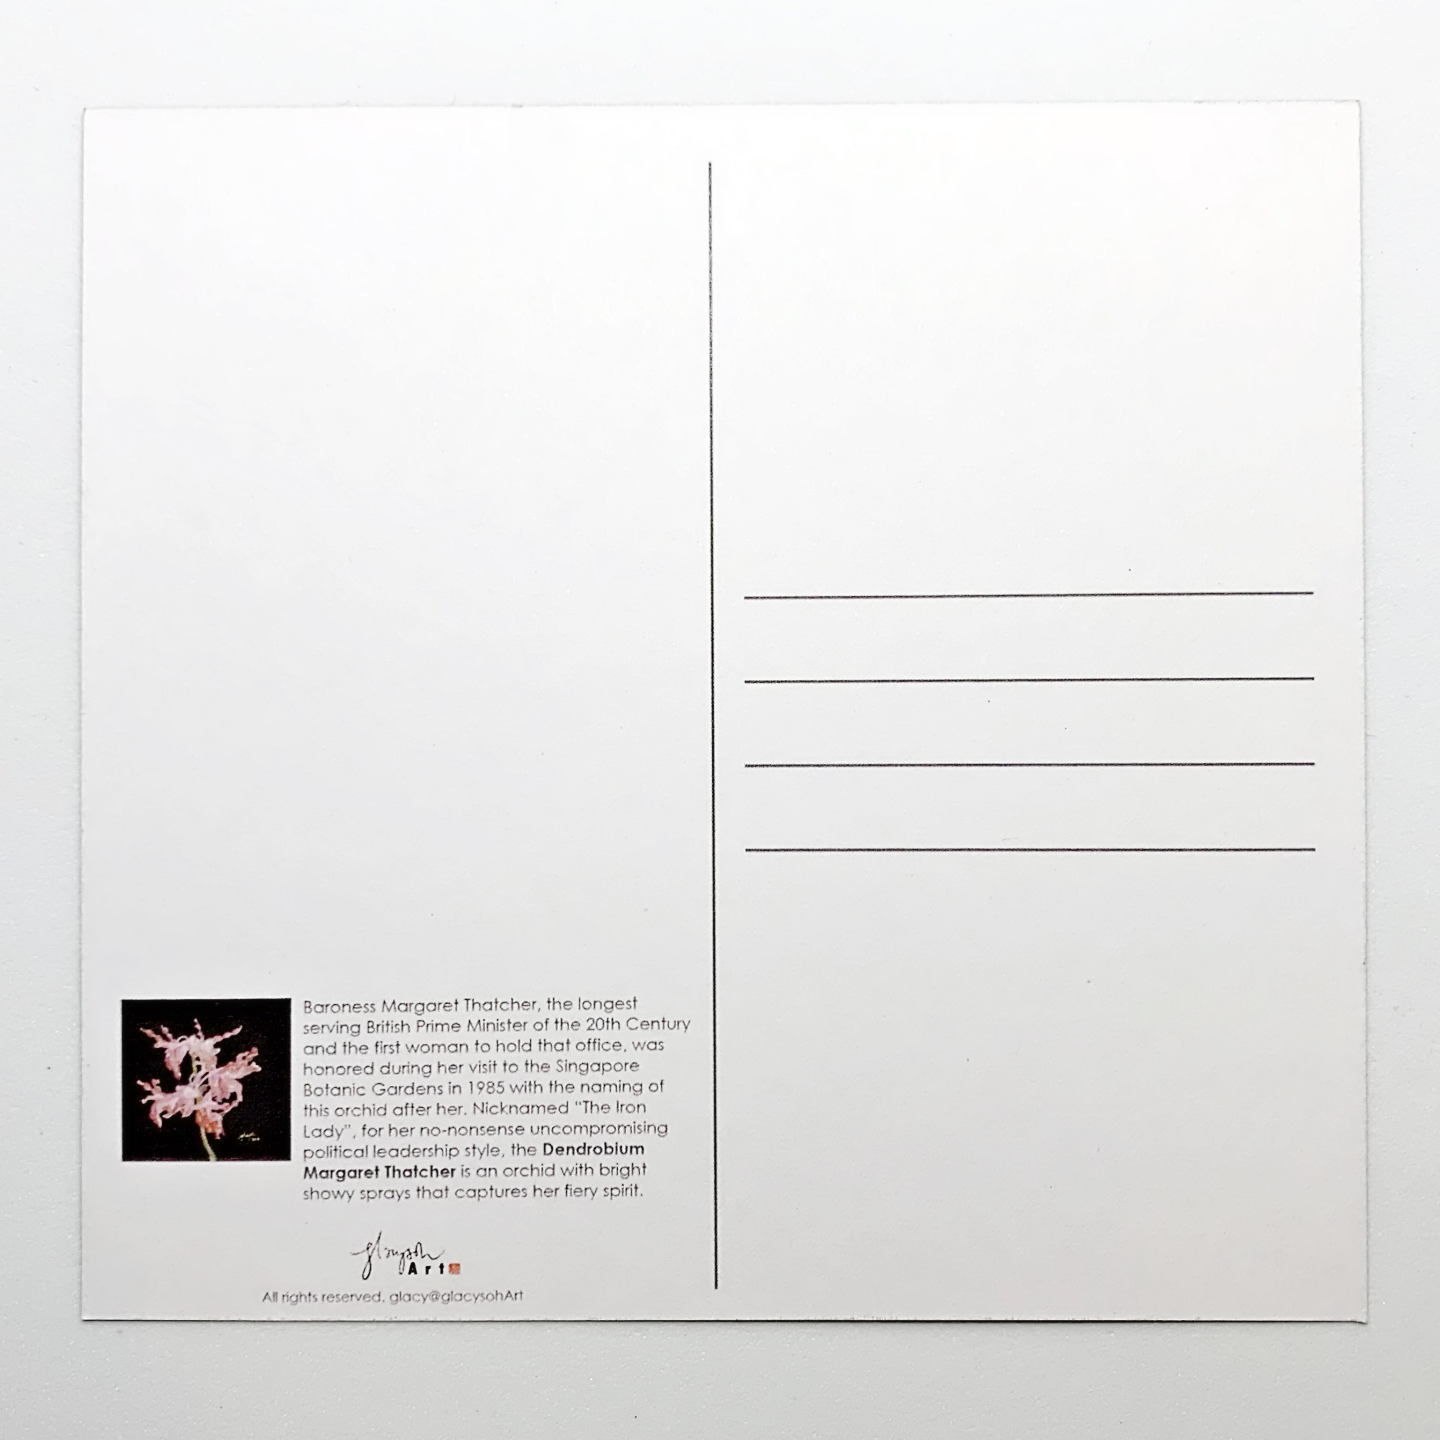 Sketches Of Singapore Series Orchid Postcard - Dendrobium Margaret Thatcher by Glacy Soh